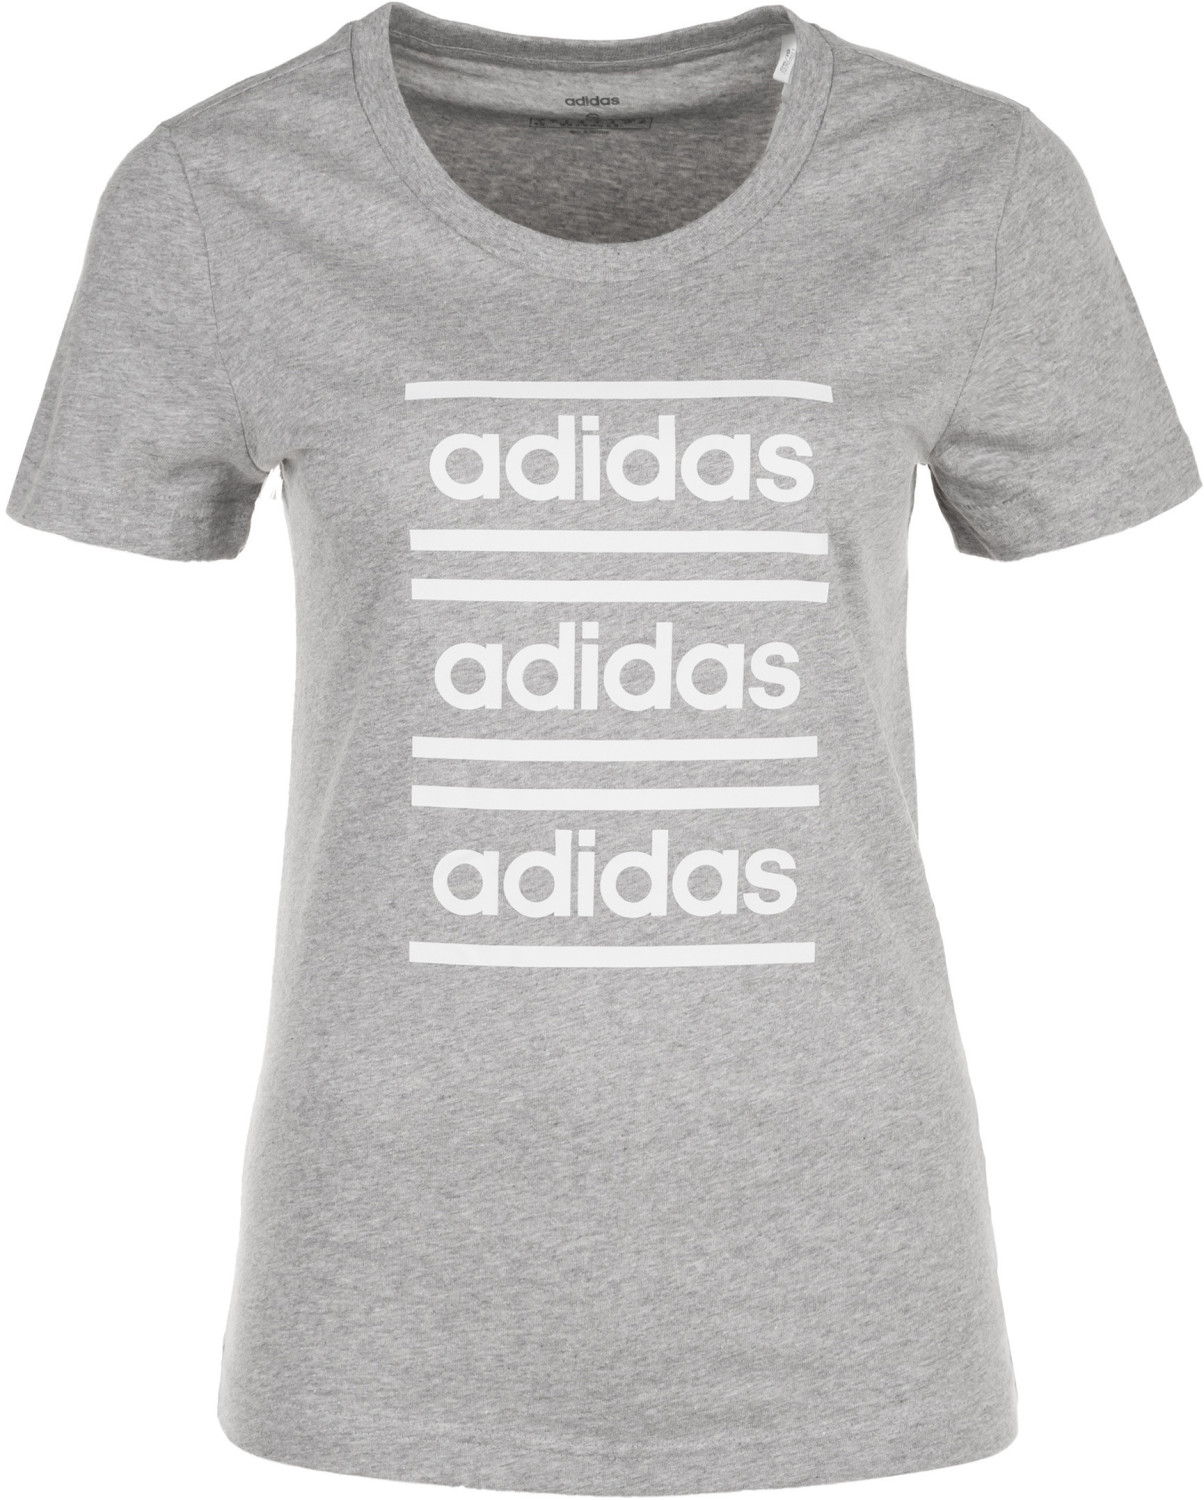 Image of Adidas Women Celebrate the 90s T-Shirt medium grey heather/white